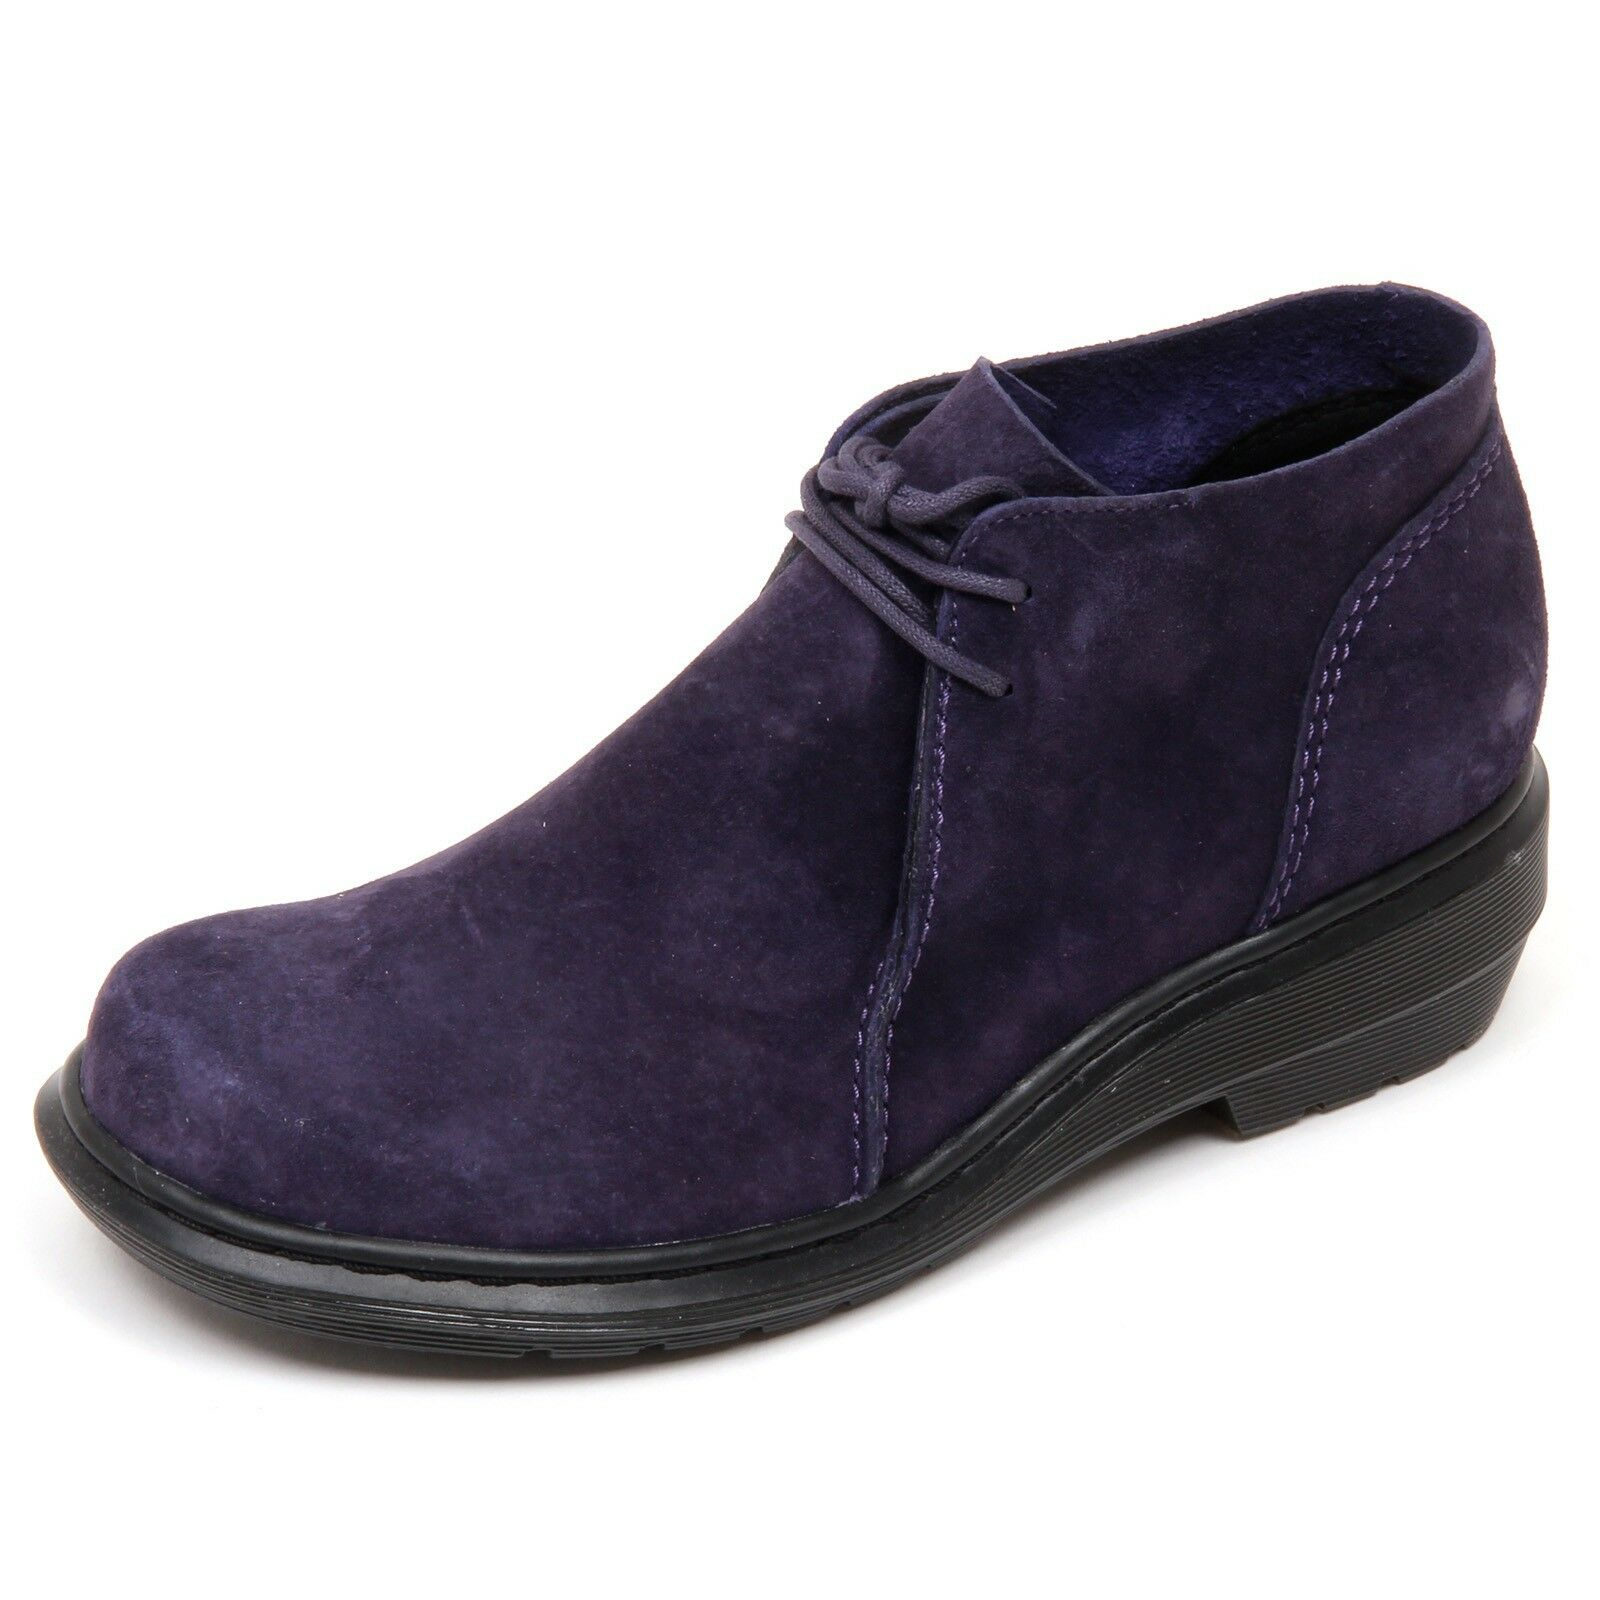 Grandes zapatos con descuento D4600 (without box) polacchino donna purple DR. MARTENS SELIMA boot woman